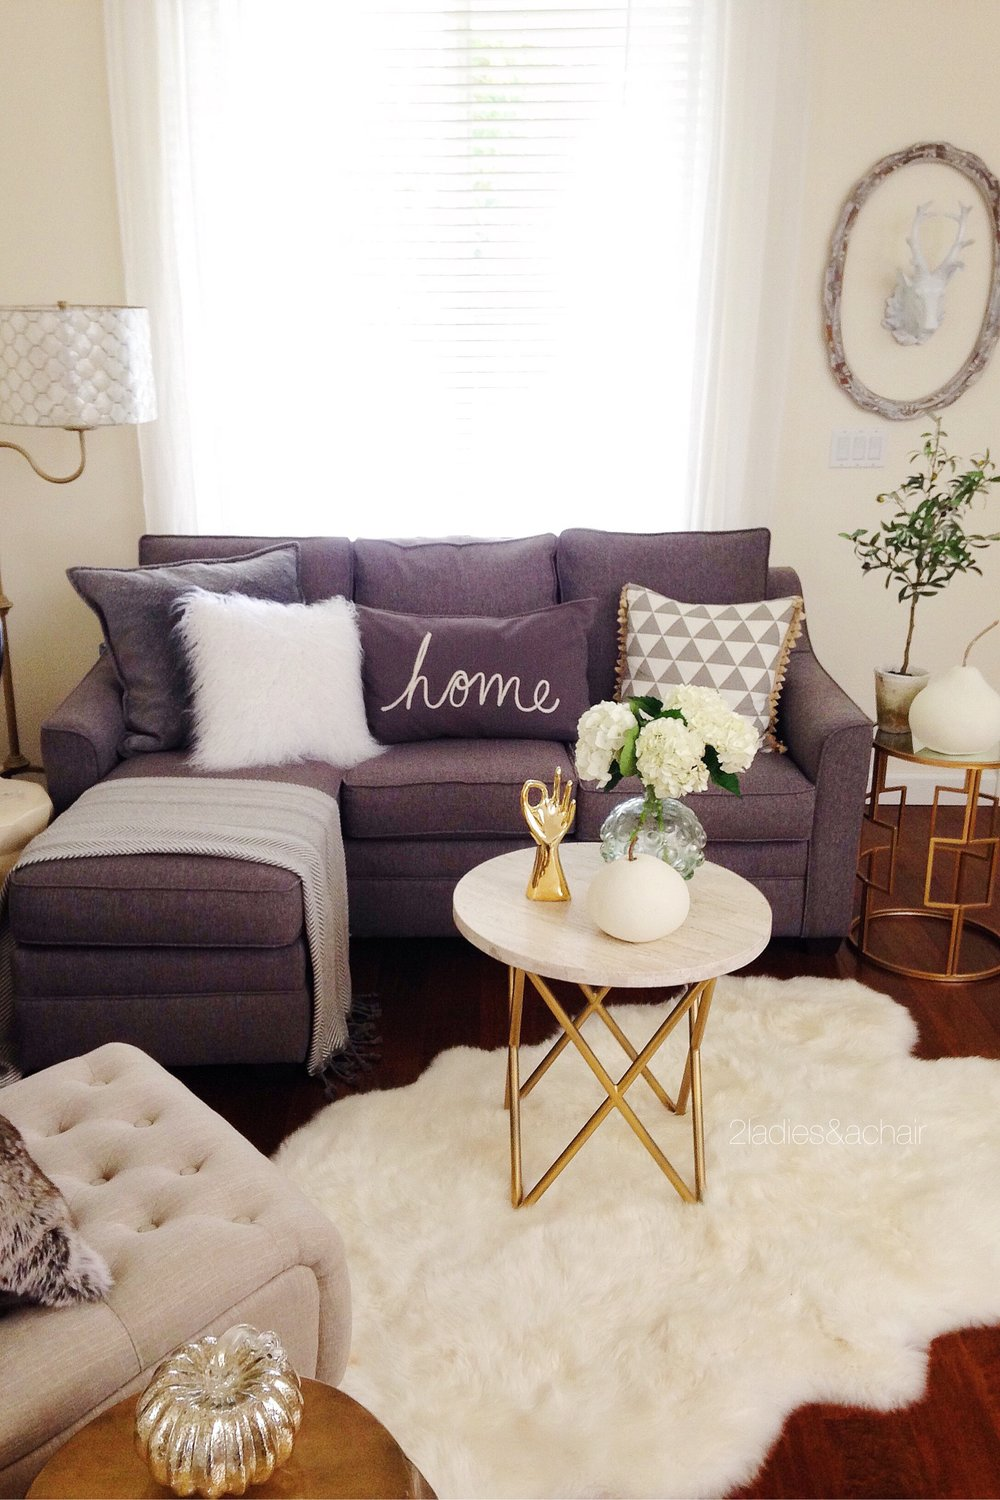 Top 5 tips for selling your home during the holidays windermere bellevue commons home to top - Fall decor trends five tips to spruce up your homes ...